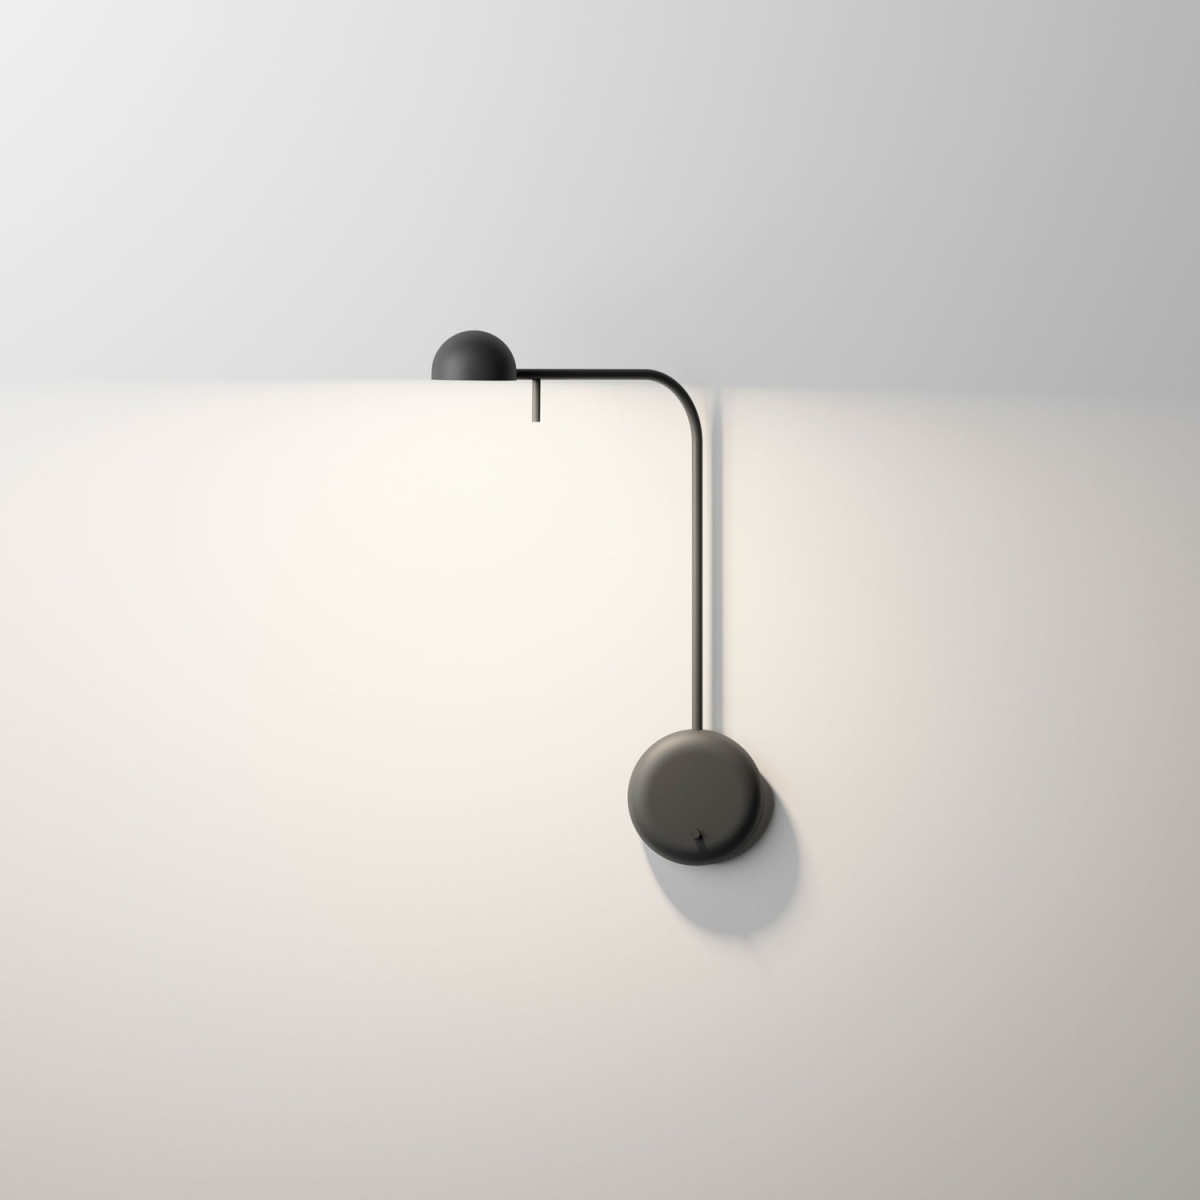 Vibia The Edit - Pin - A Minimalist Light Mural